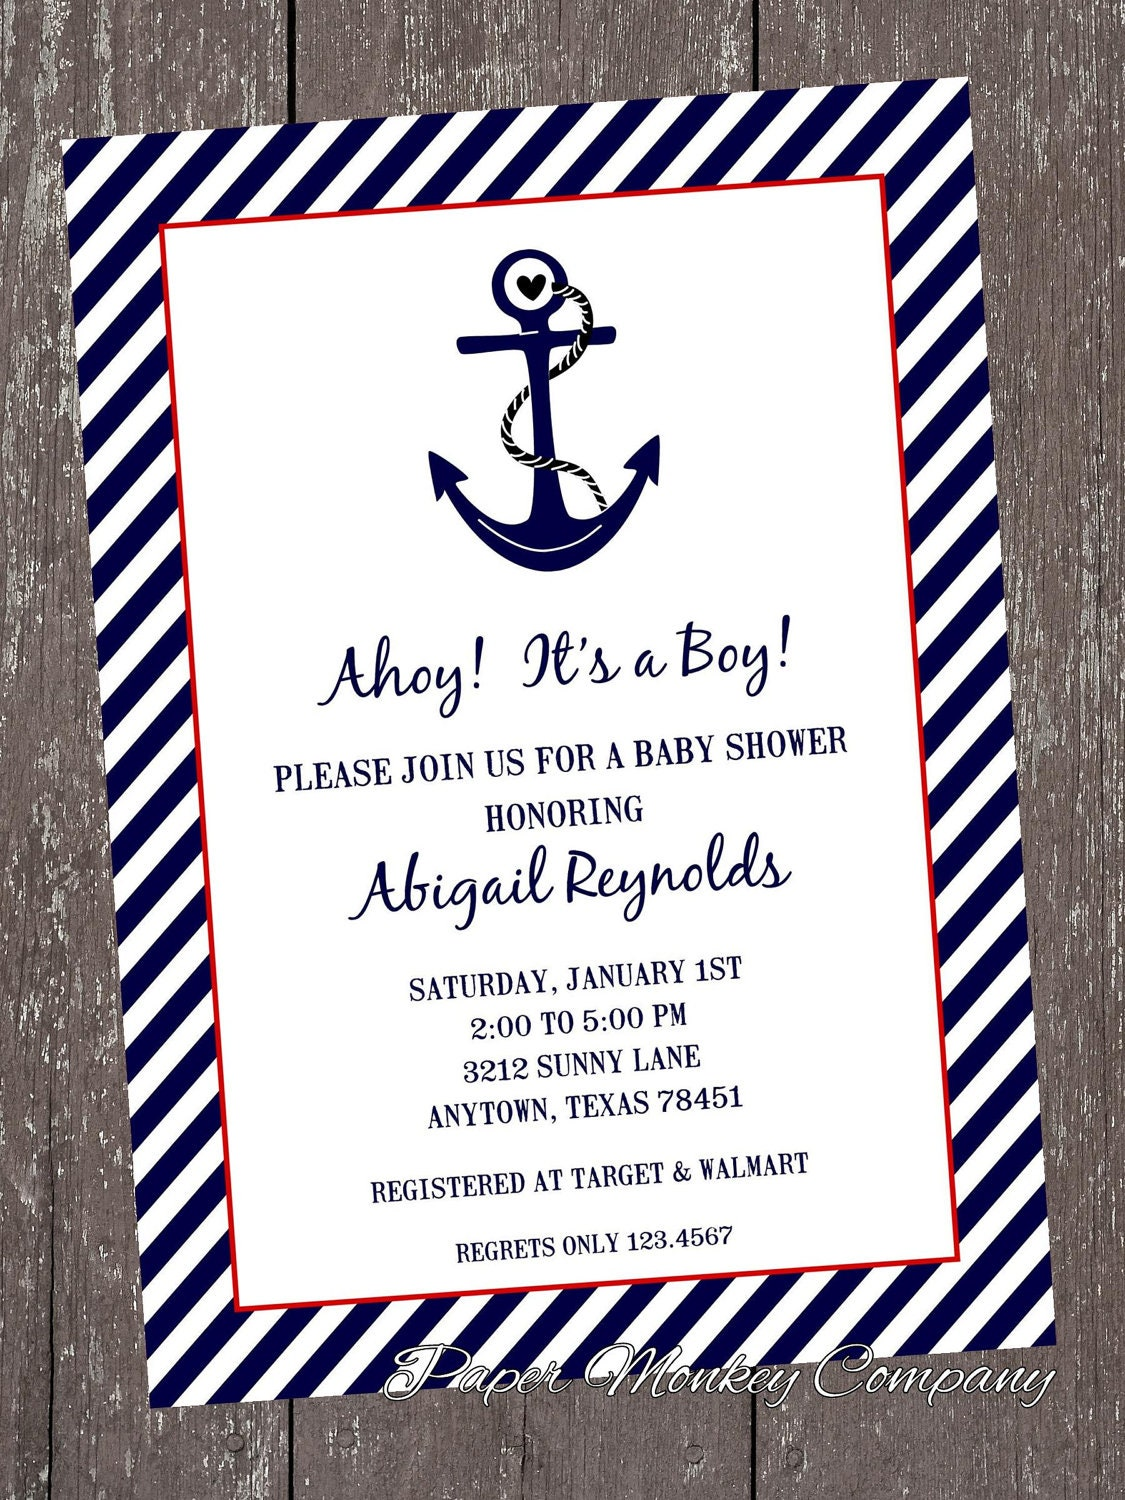 Nautical Baby Shower Invitations Each With Envelope - Baby shower invitation text